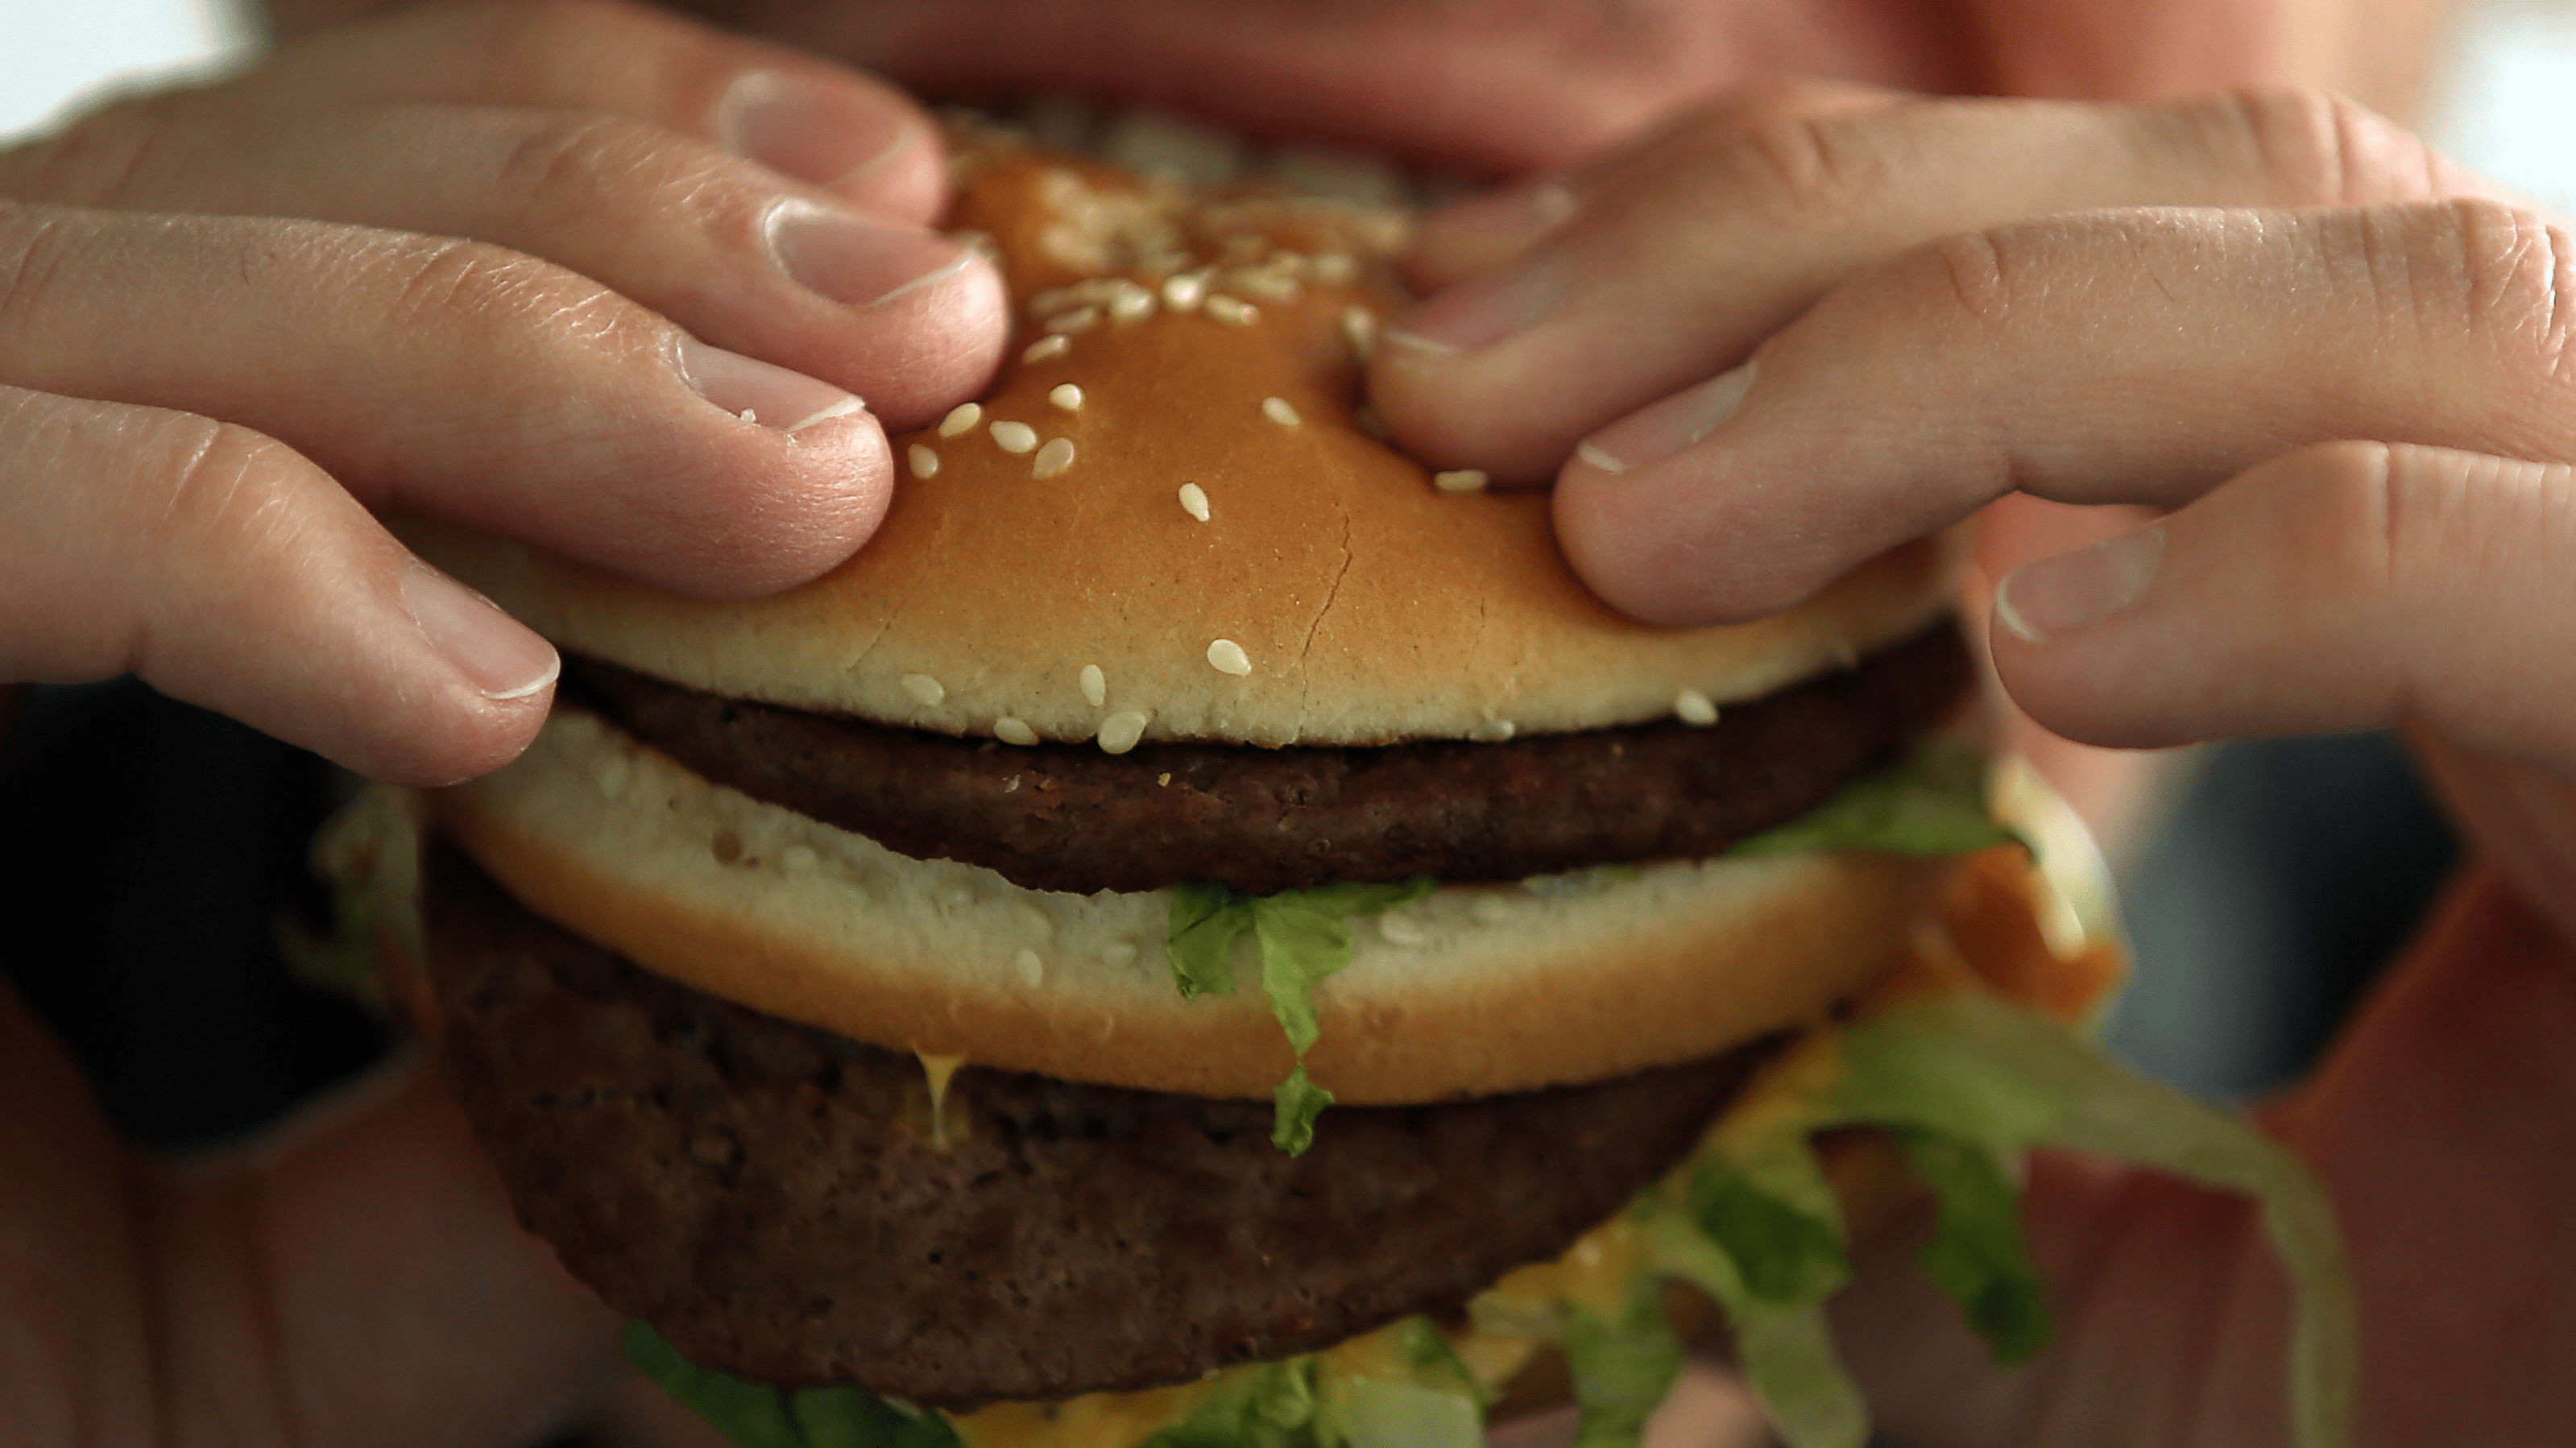 McDonald's Launches Free Big Mac 'MacCoin' Currency To Mark Burger's 50th Anniversary